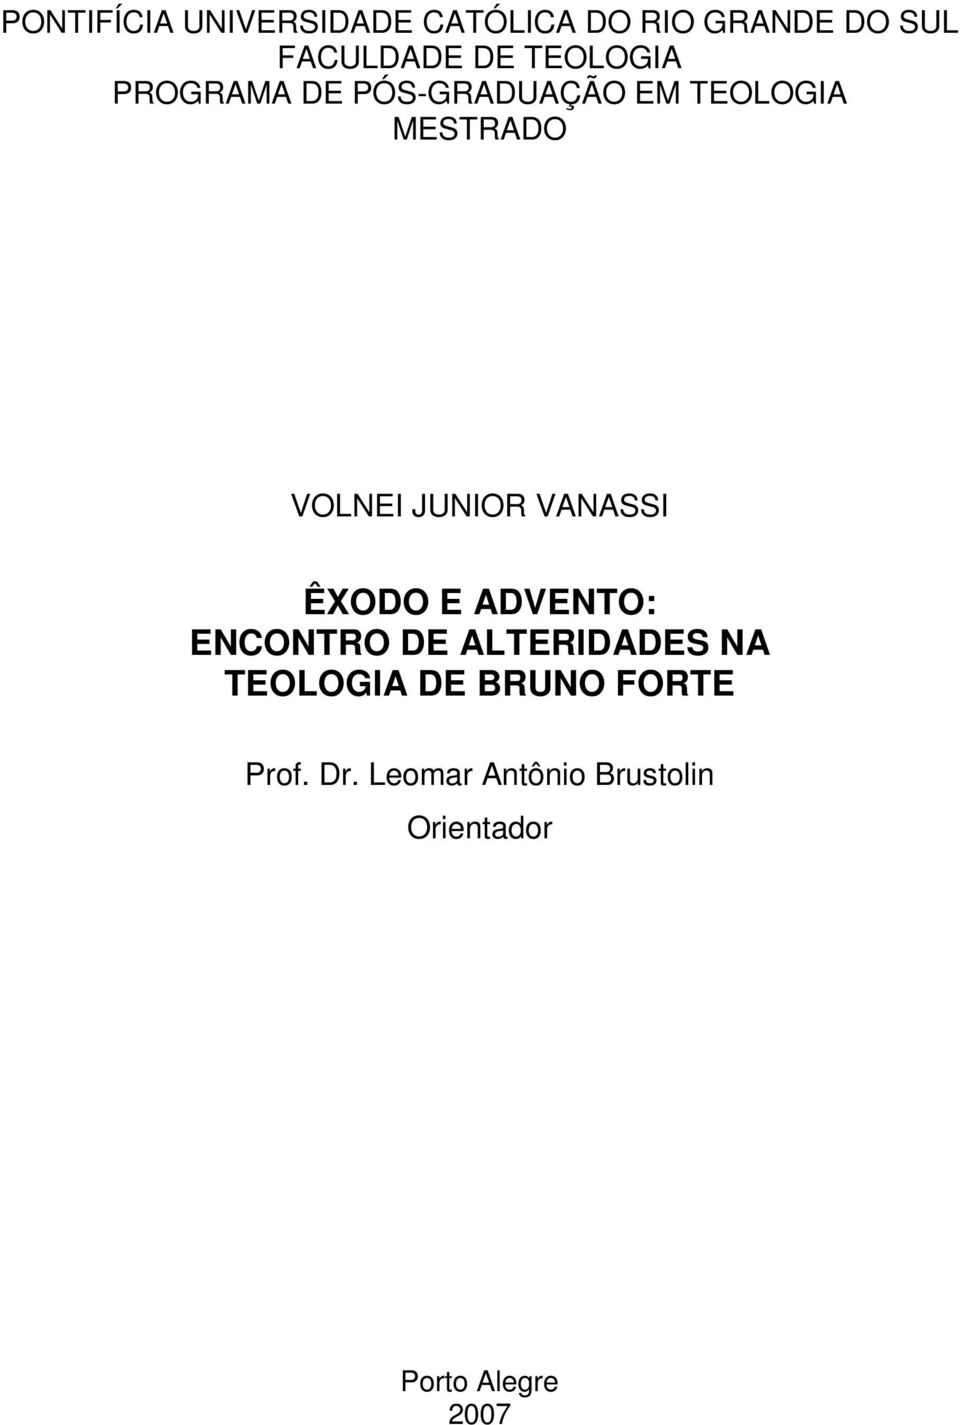 JUNIOR VANASSI ÊXODO E ADVENTO: ENCONTRO DE ALTERIDADES NA TEOLOGIA